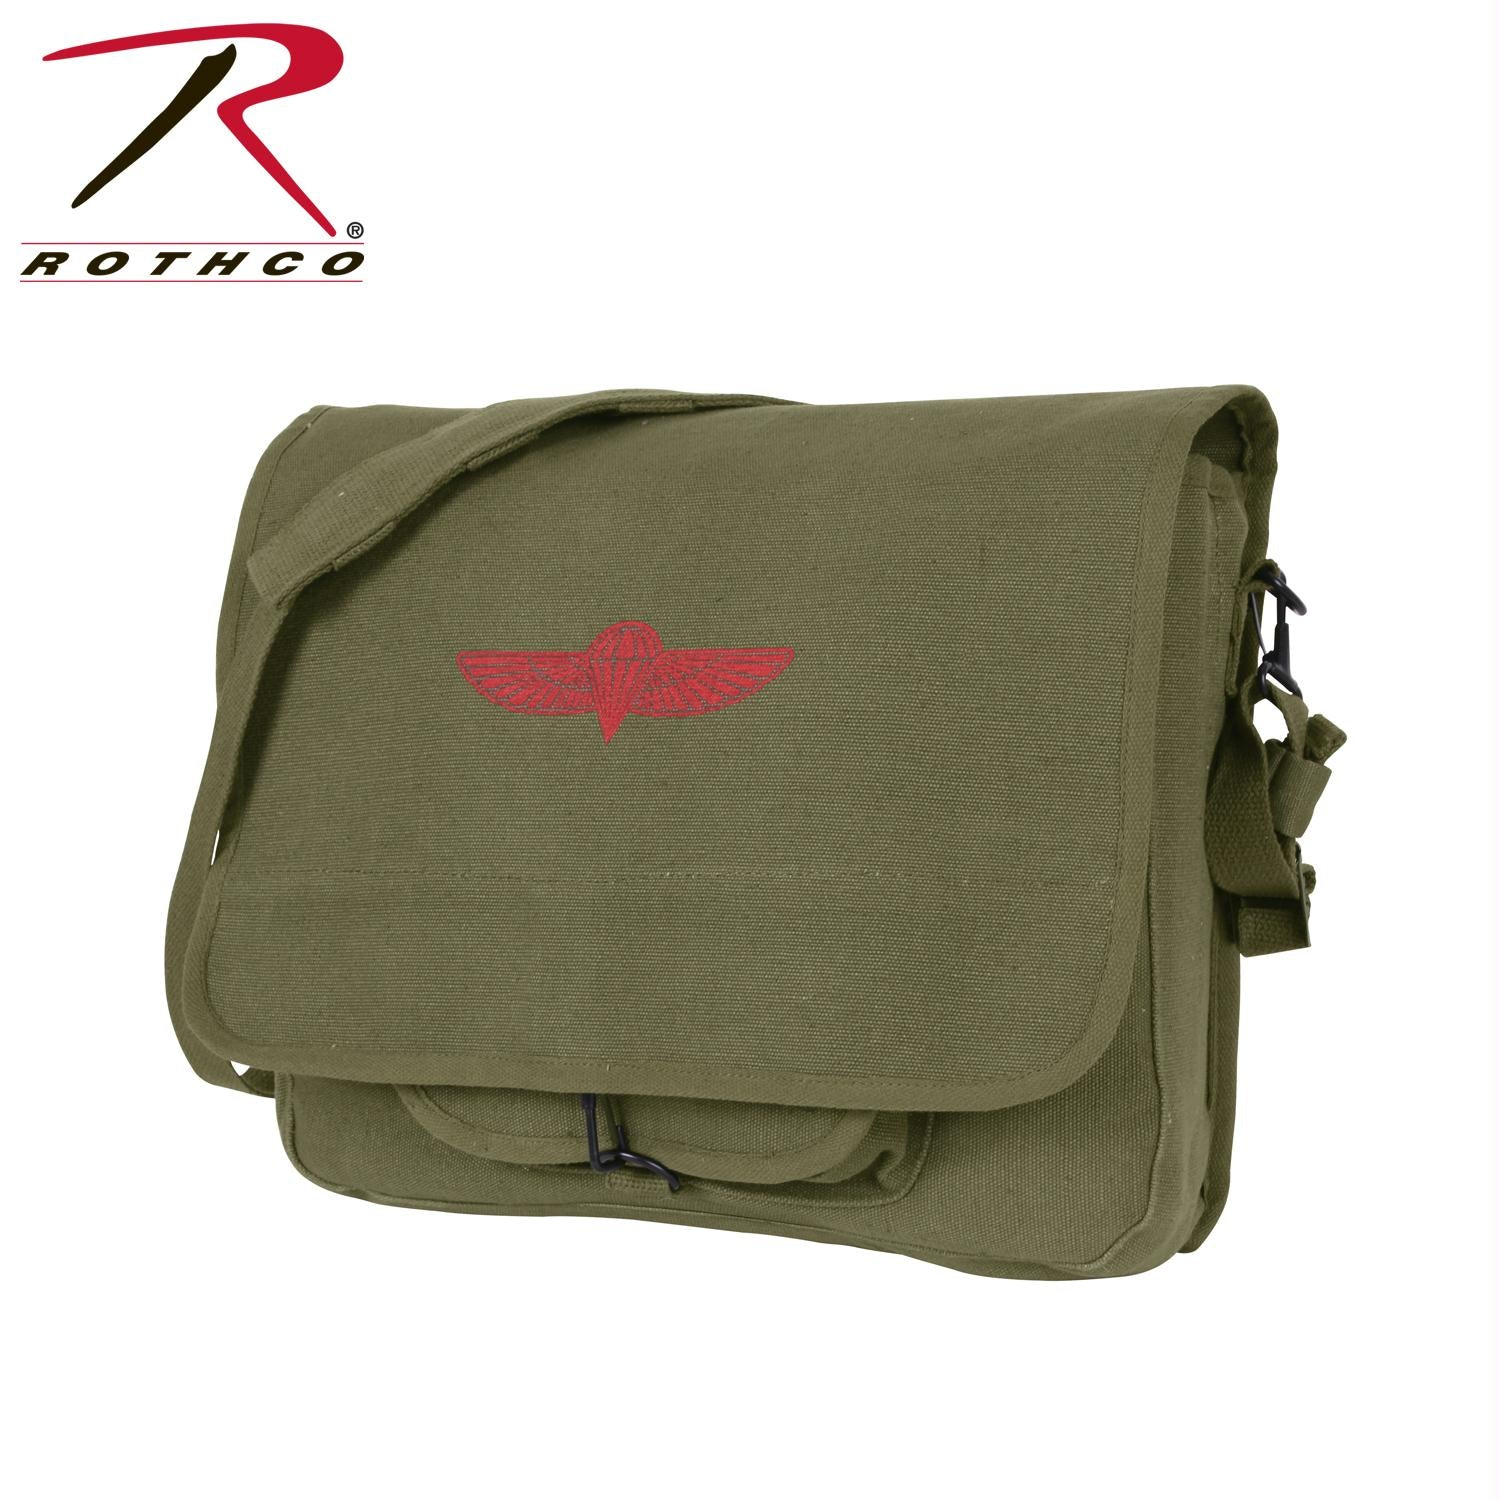 Rothco Canvas Israeli Paratrooper Bag - Olive Drab